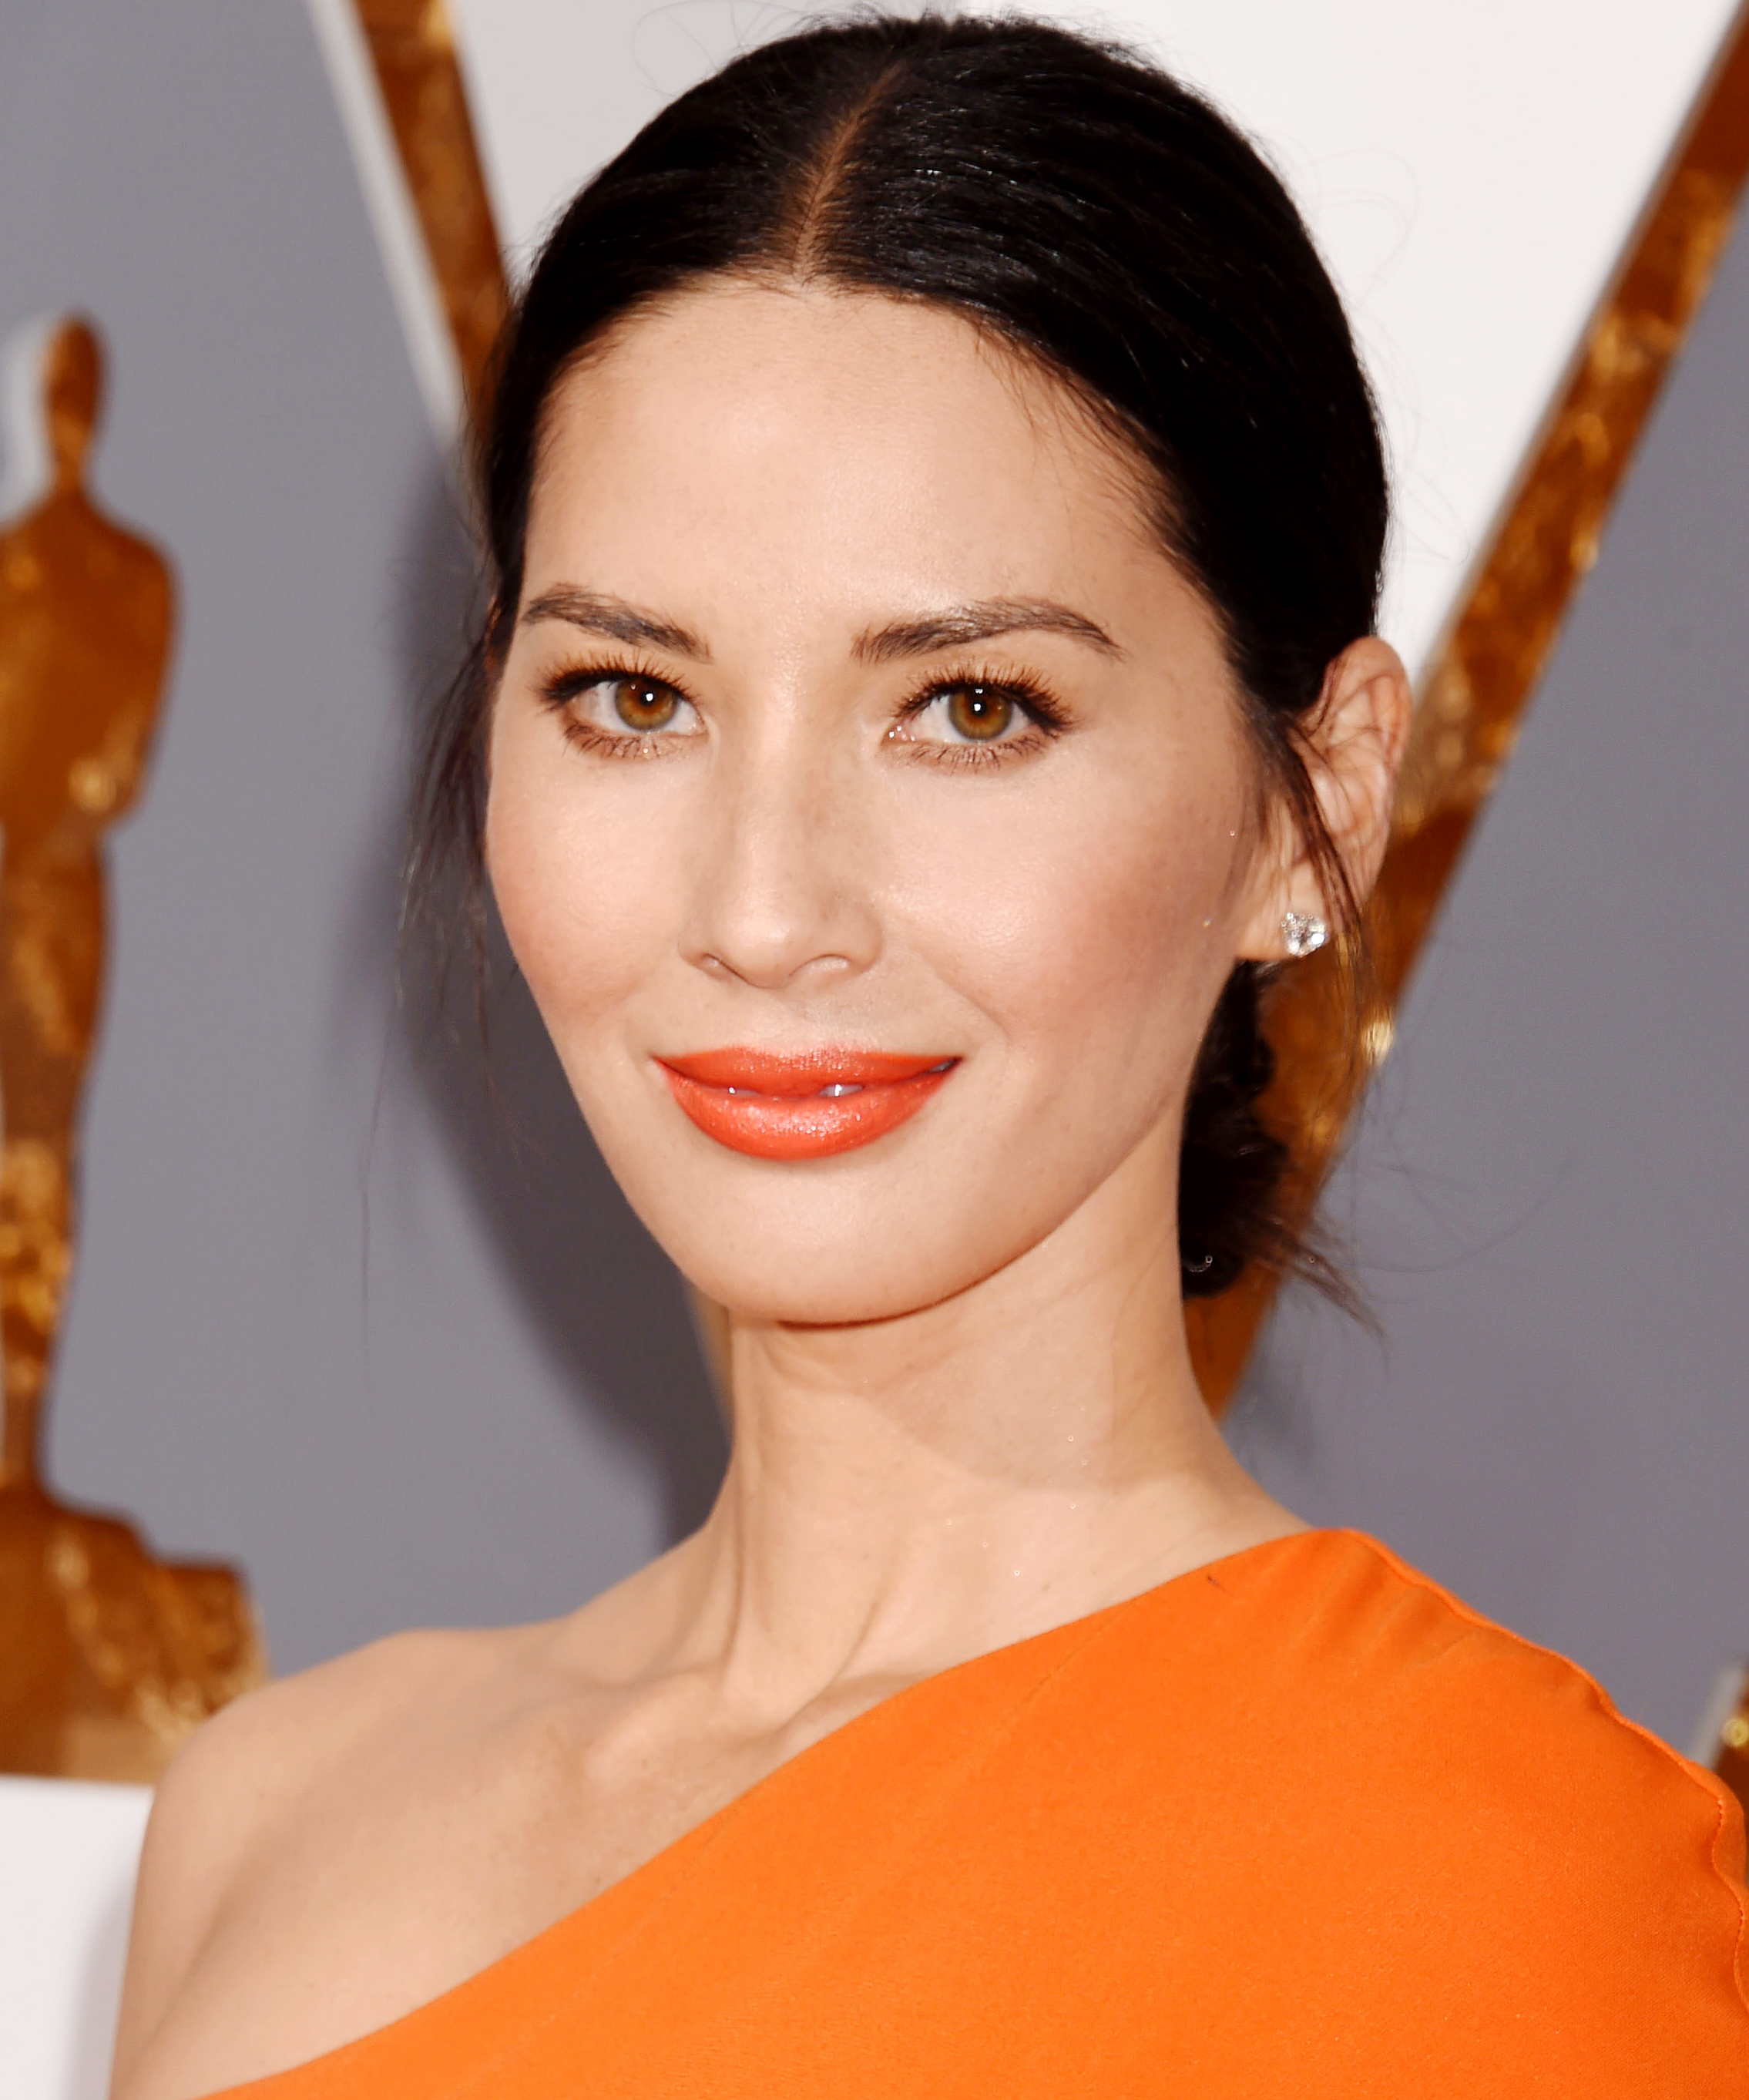 Olivia Munn Just Adopted a New Dog and He Has the CutestName